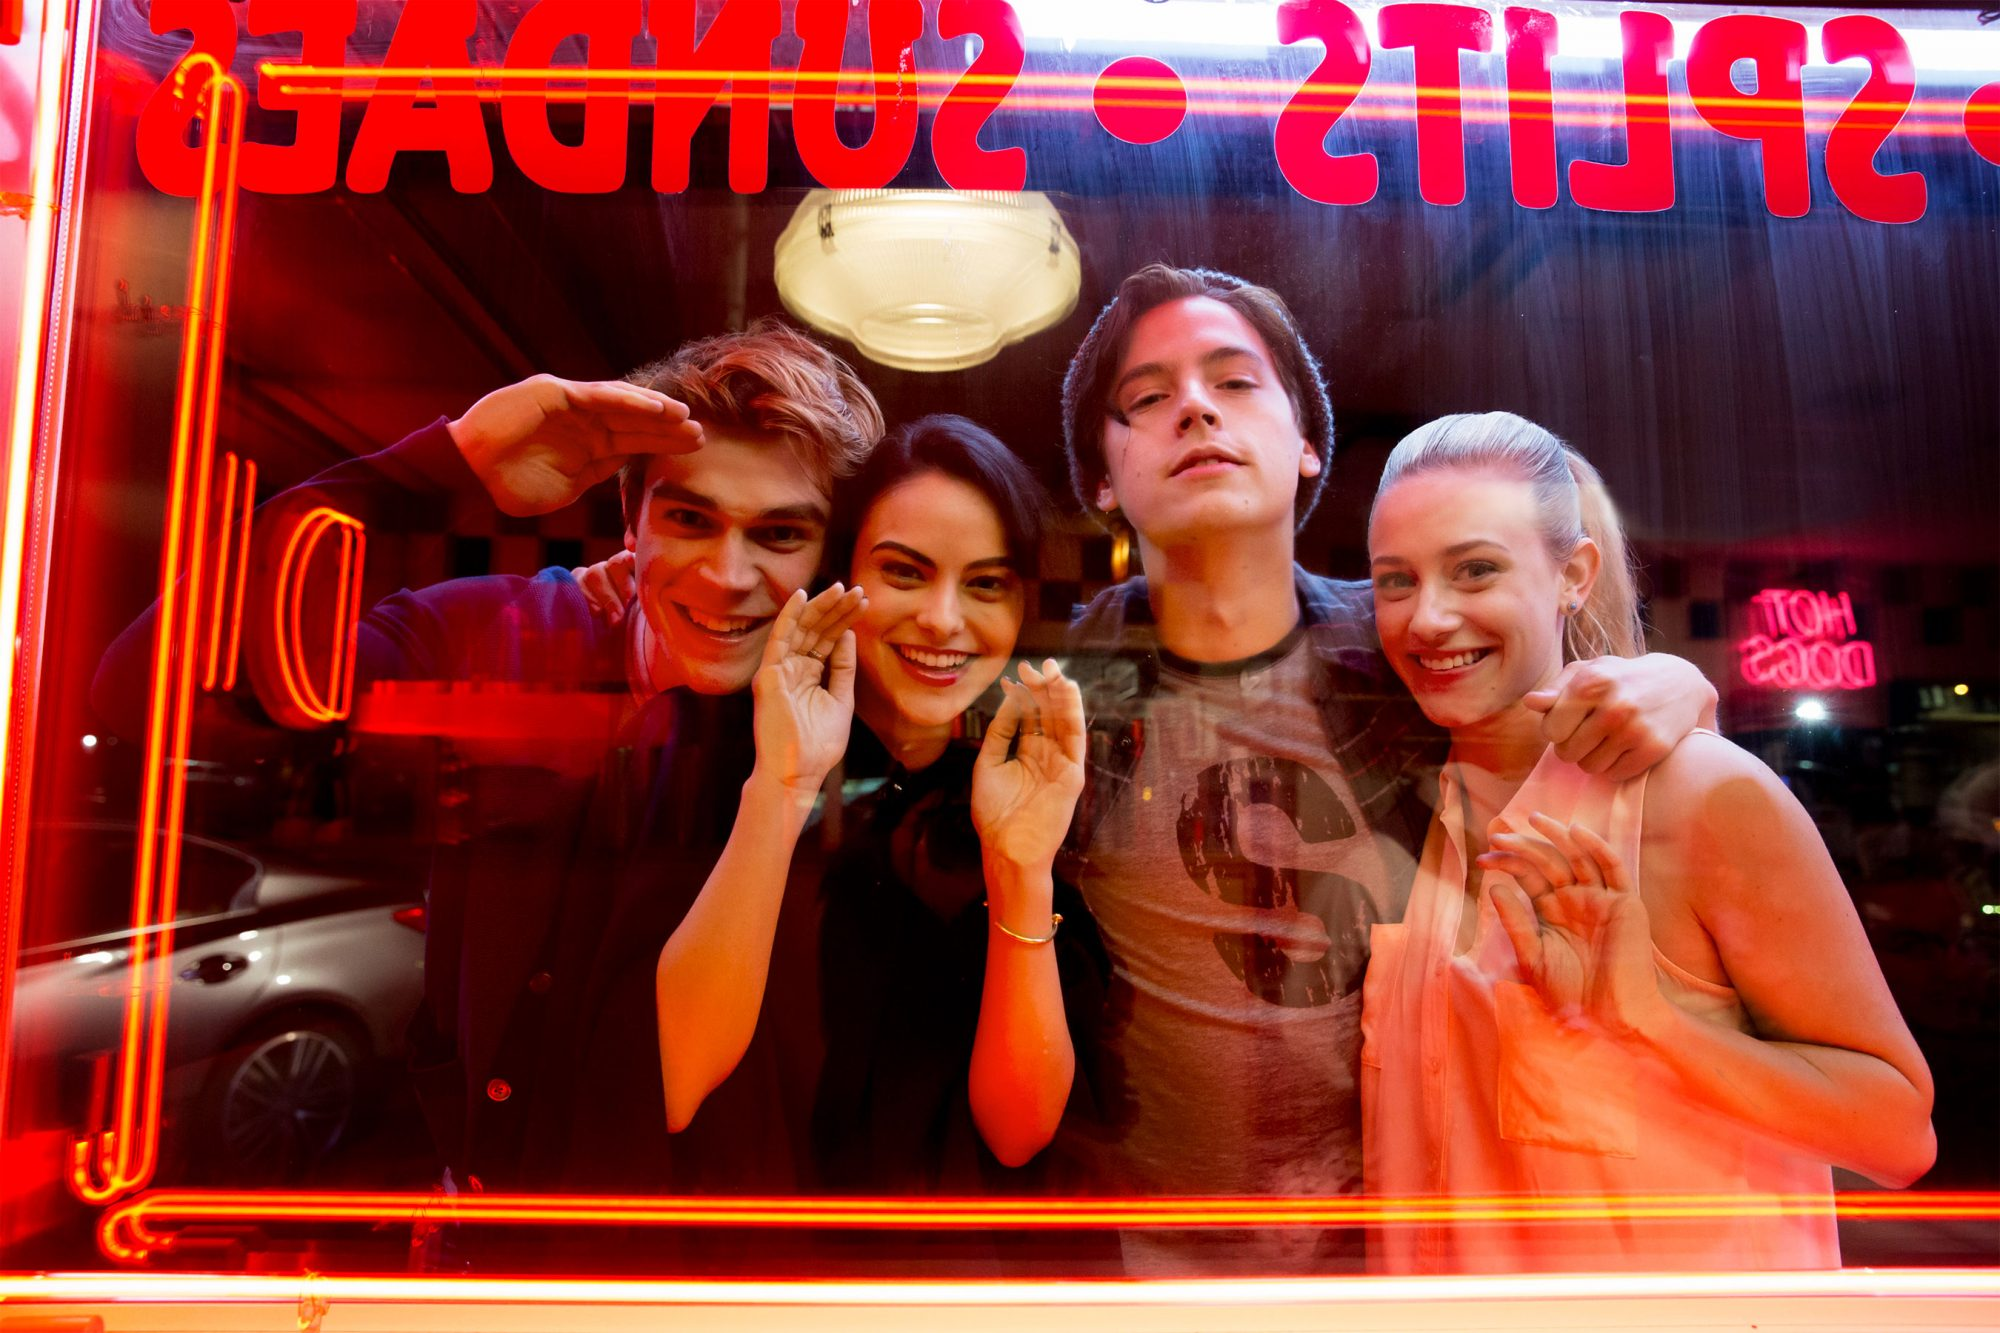 Riverdale Chapter One: The River's Edge Pictured (L-R): KJ Apa, Camila Mendes, Cole Sprouse, and Lili Reinhart BTS